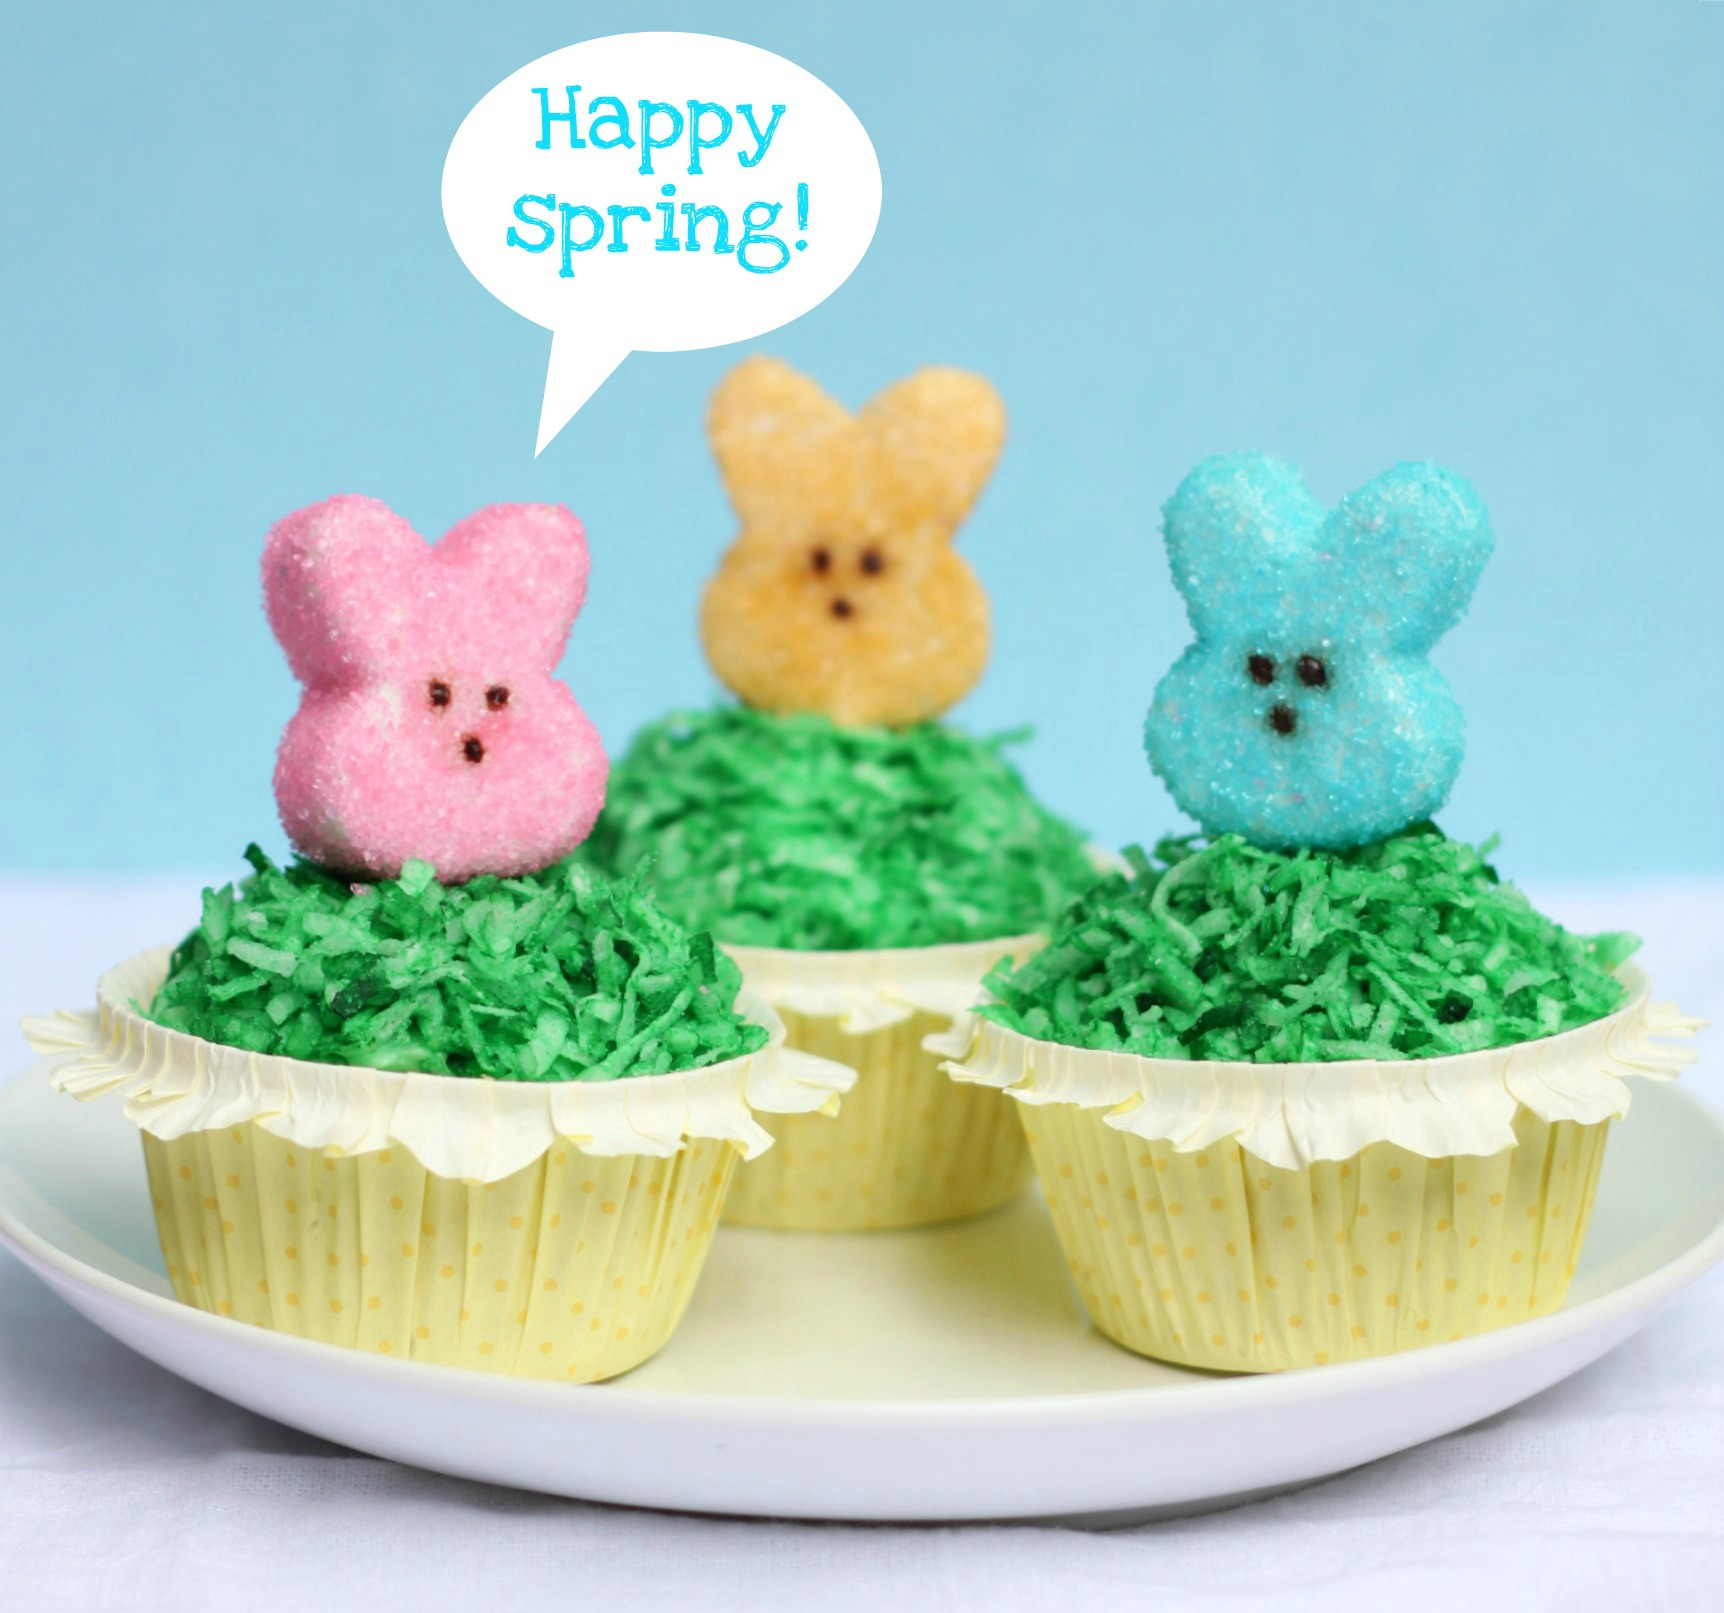 3 Cupcakes with Homemade Marshmallow Peeps on top